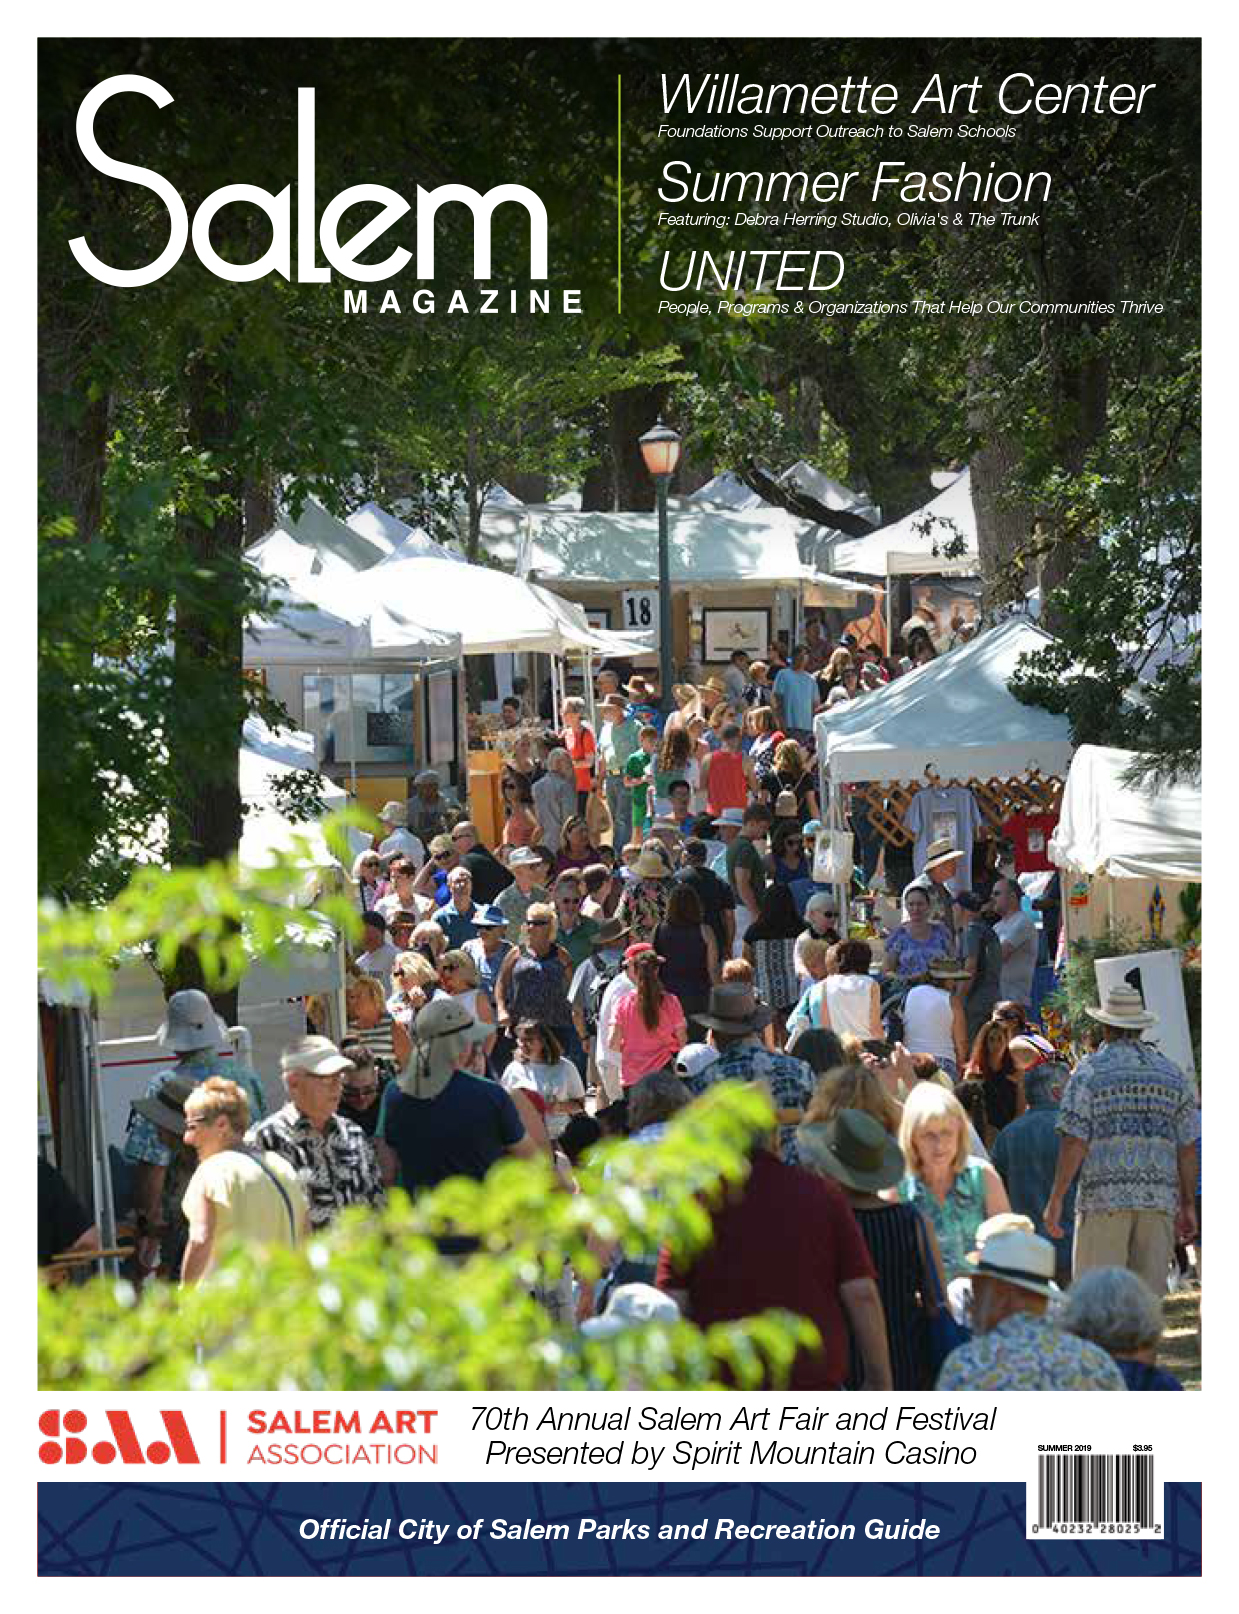 SALEM_MAG_SUMMER_19_WEB-1.jpg